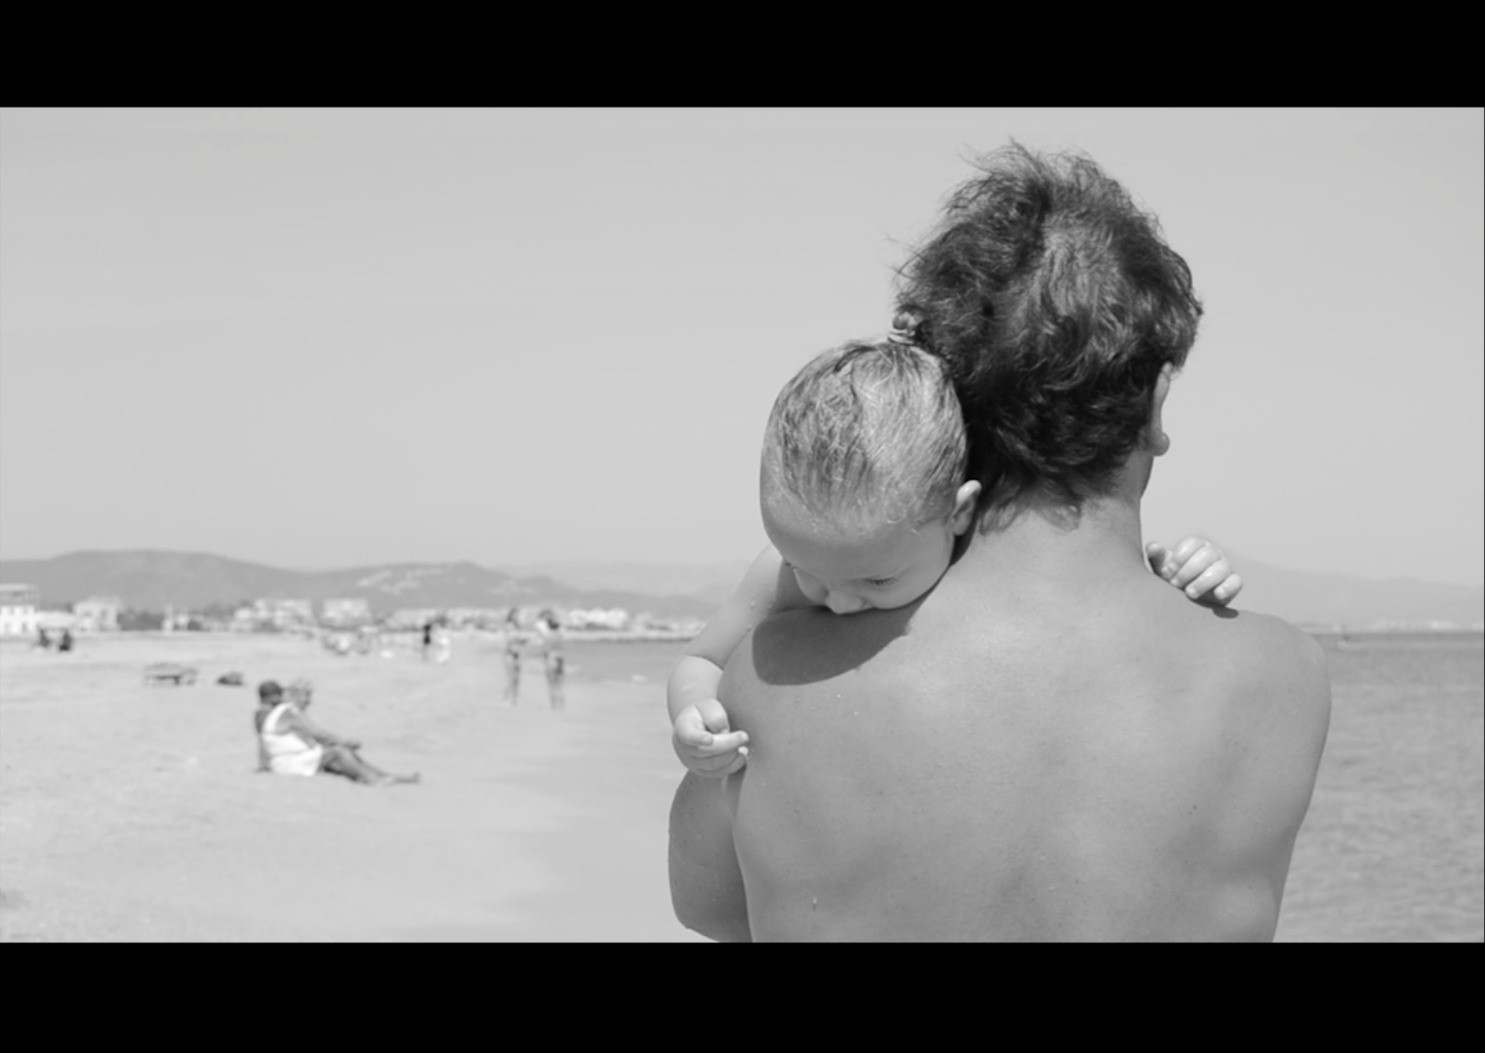 Frame from Short film Almare